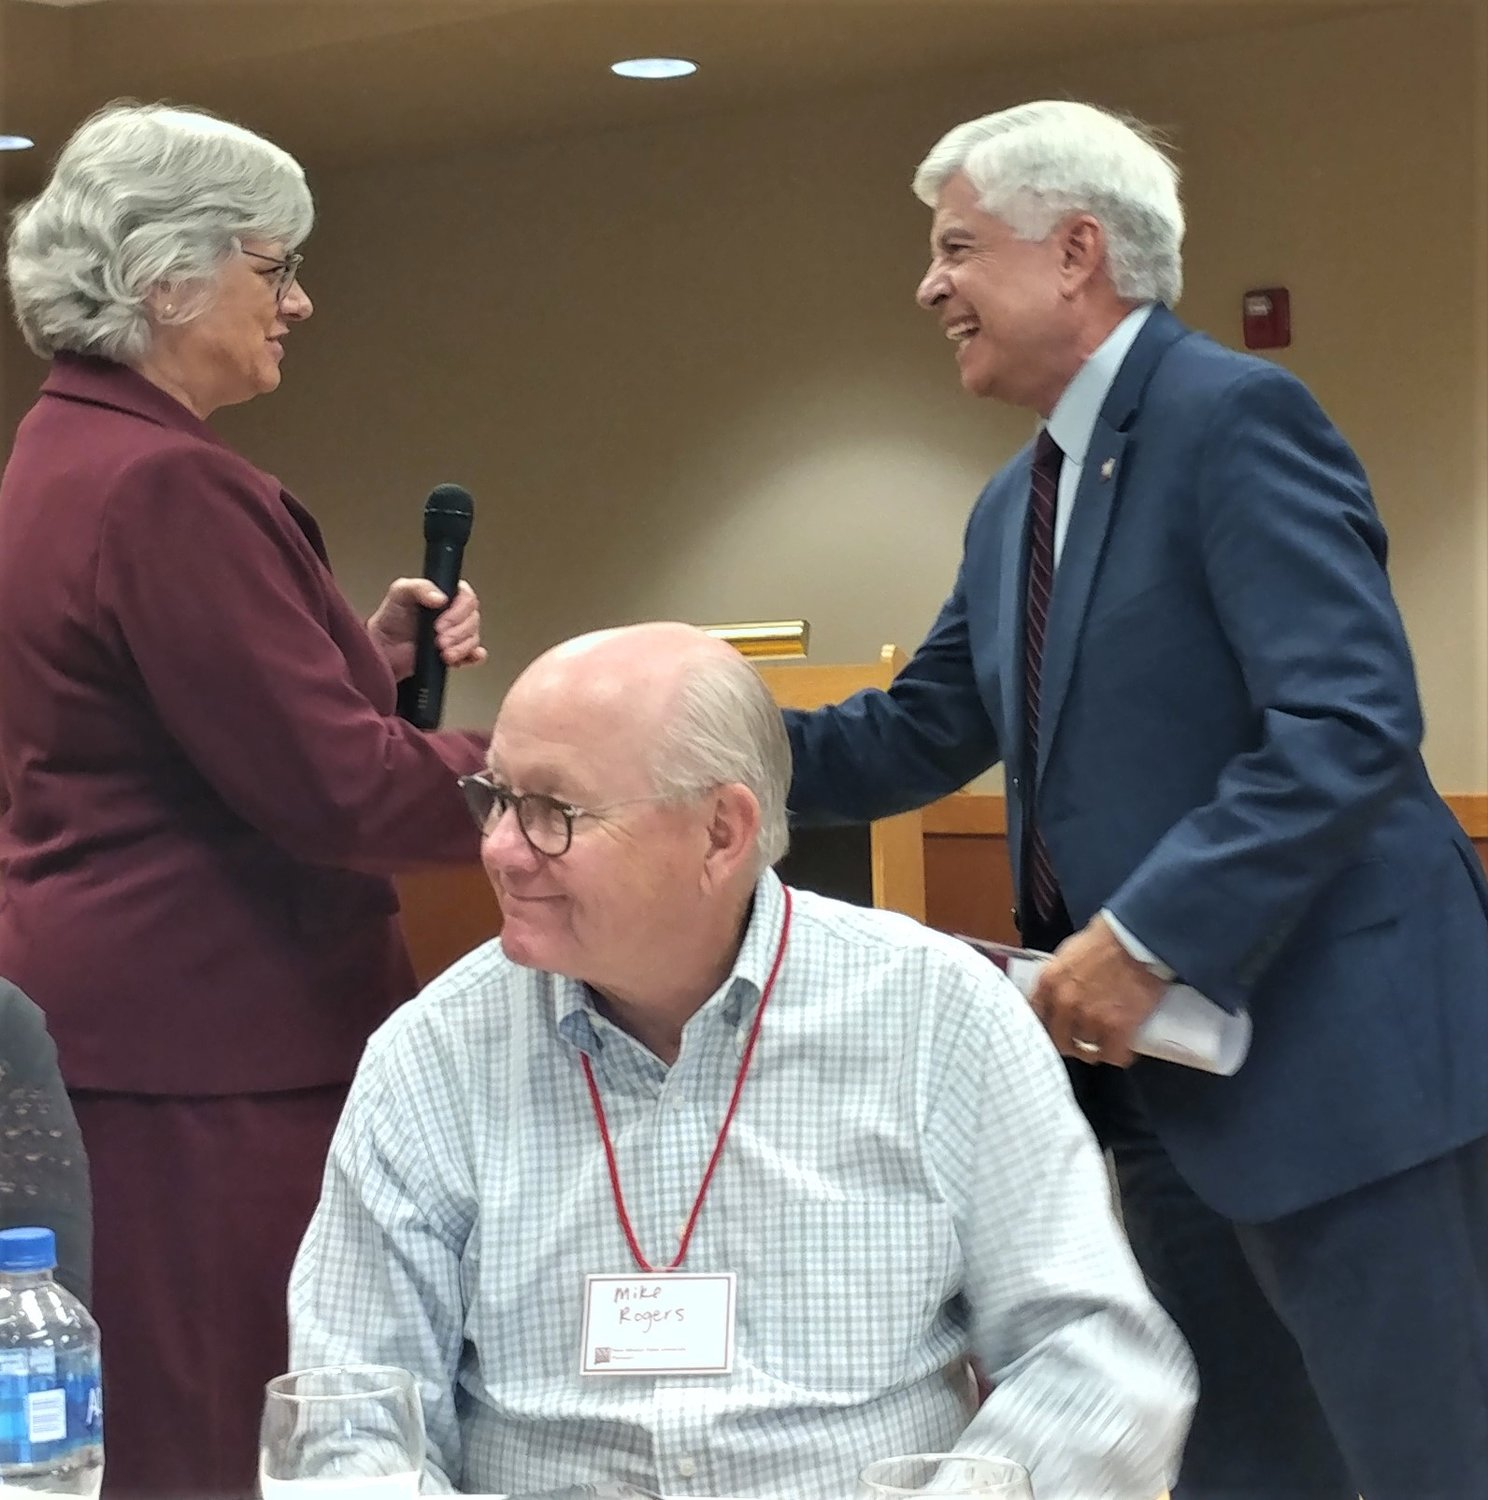 With NMSU Pioneers member Mike Rogers in the foreground, NMSU Chancellor Dan Arvizu greets NMSU's new provost, Carol Parker.